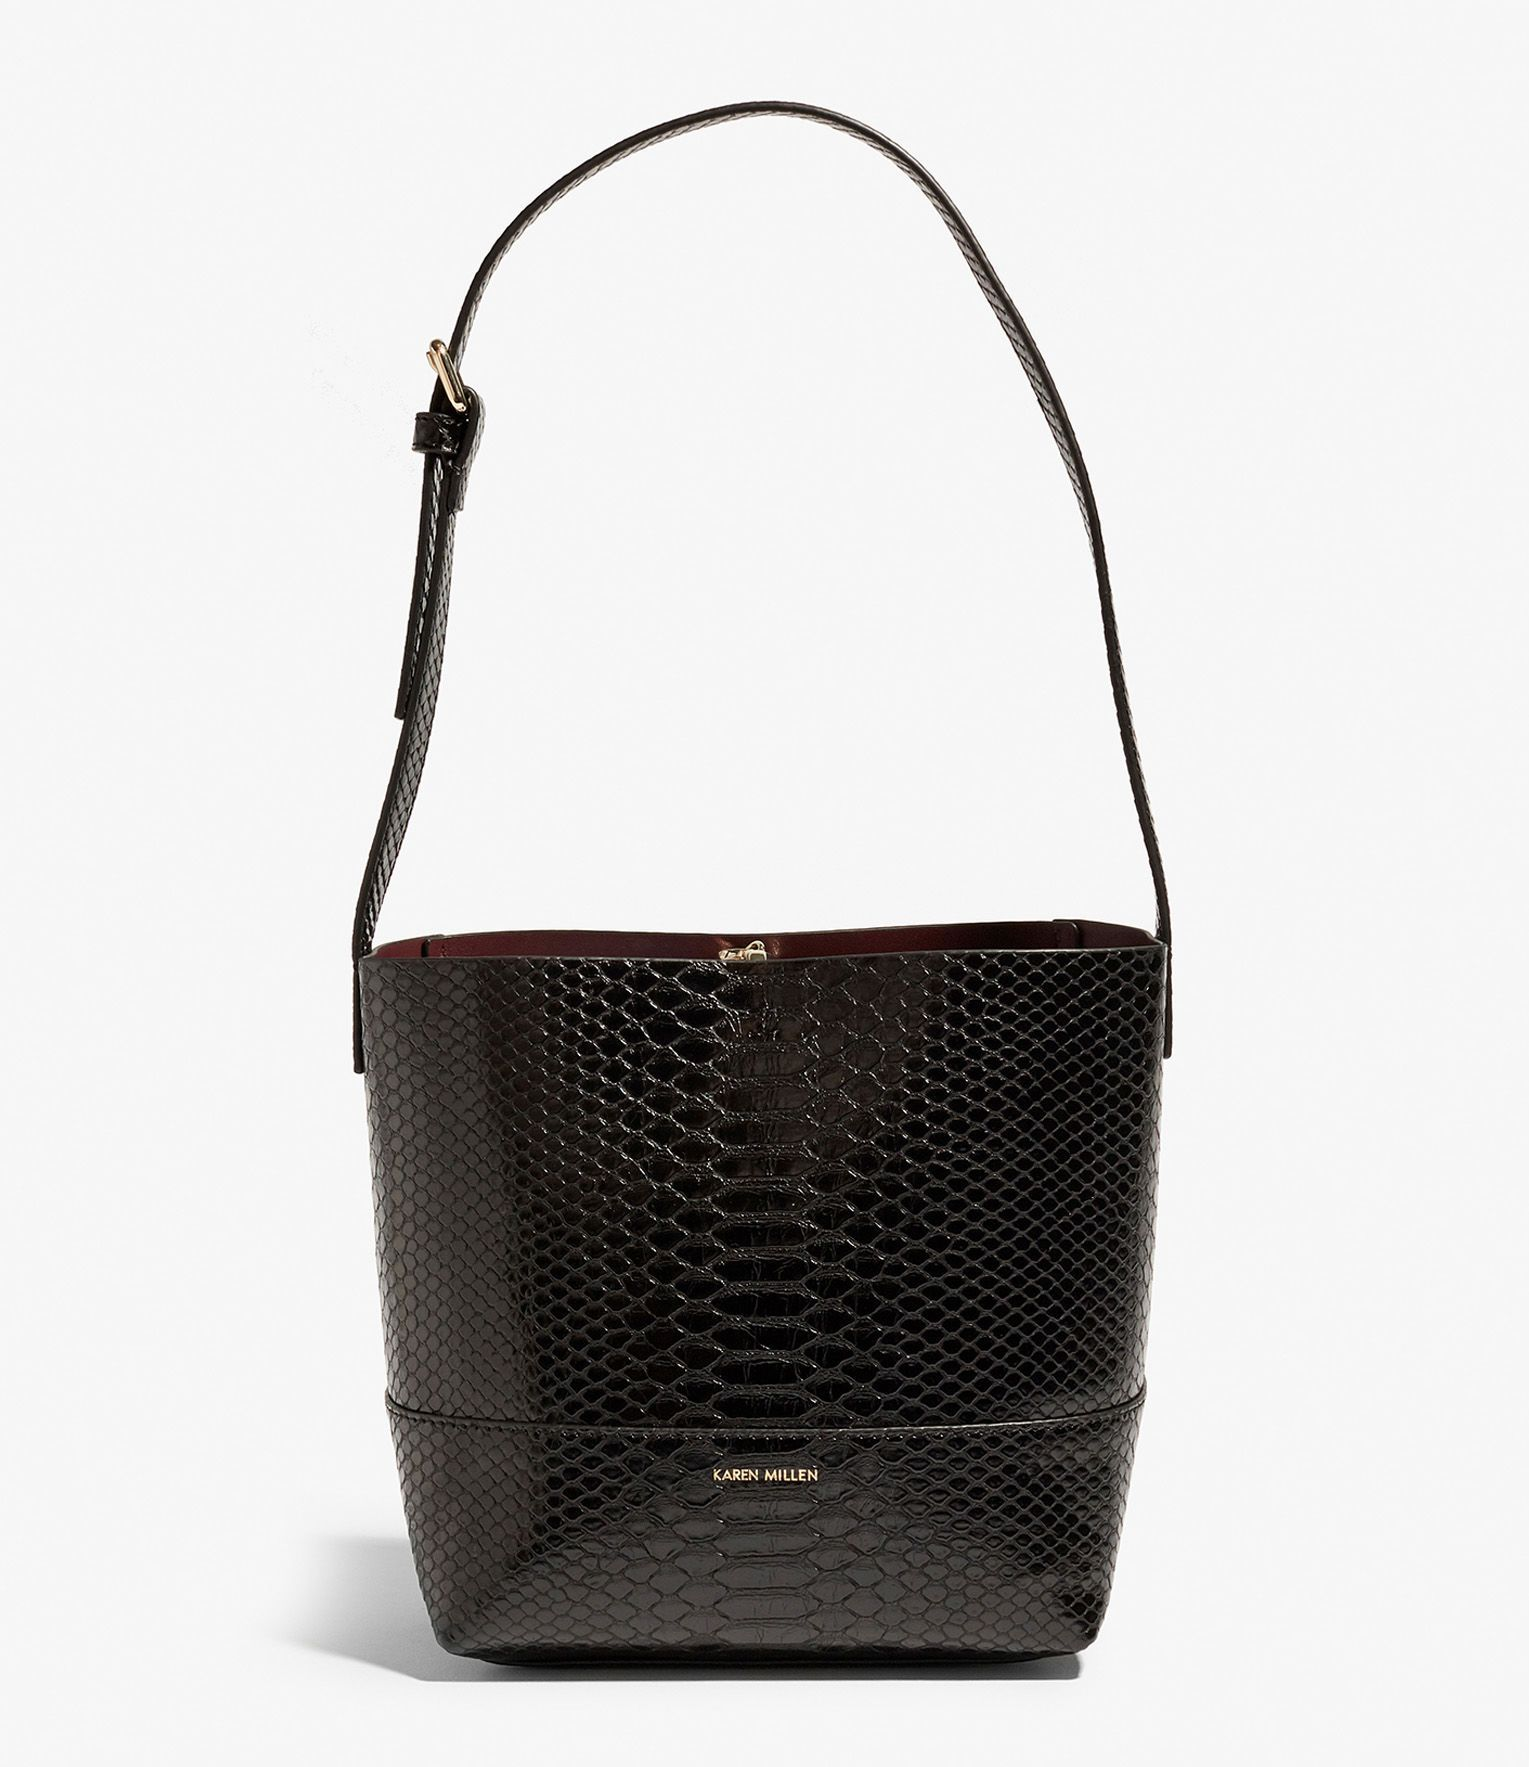 2d7b55c907 The Best Handbags On The High Street - Affordable Bags for Under £200